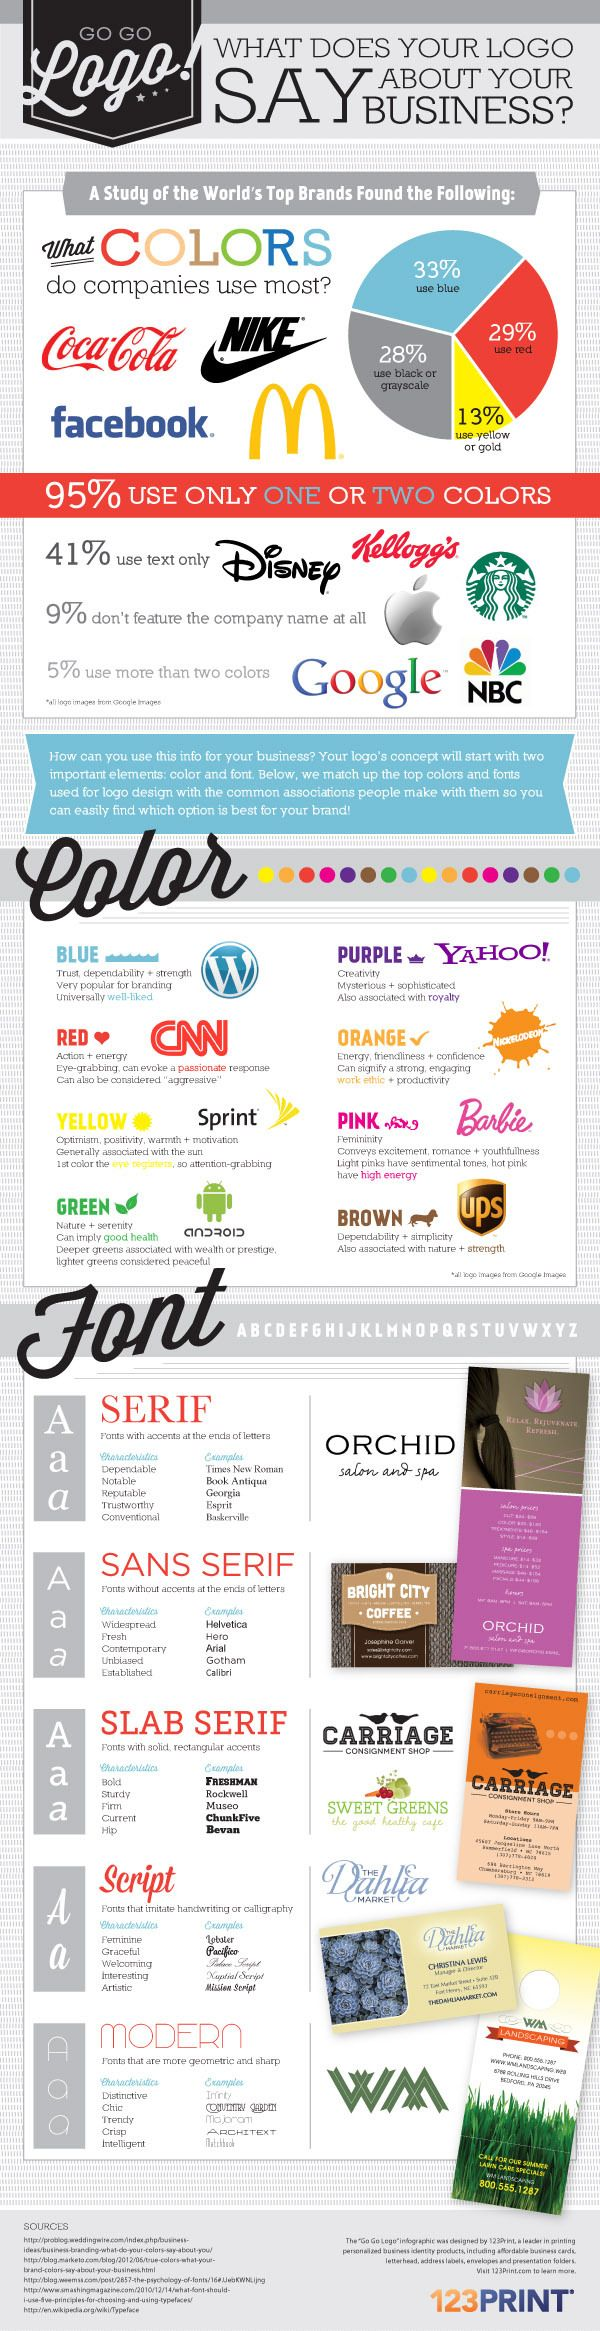 Print Infographic Designing Logo What Does Your Logo Say About Your Business? [Infographic]